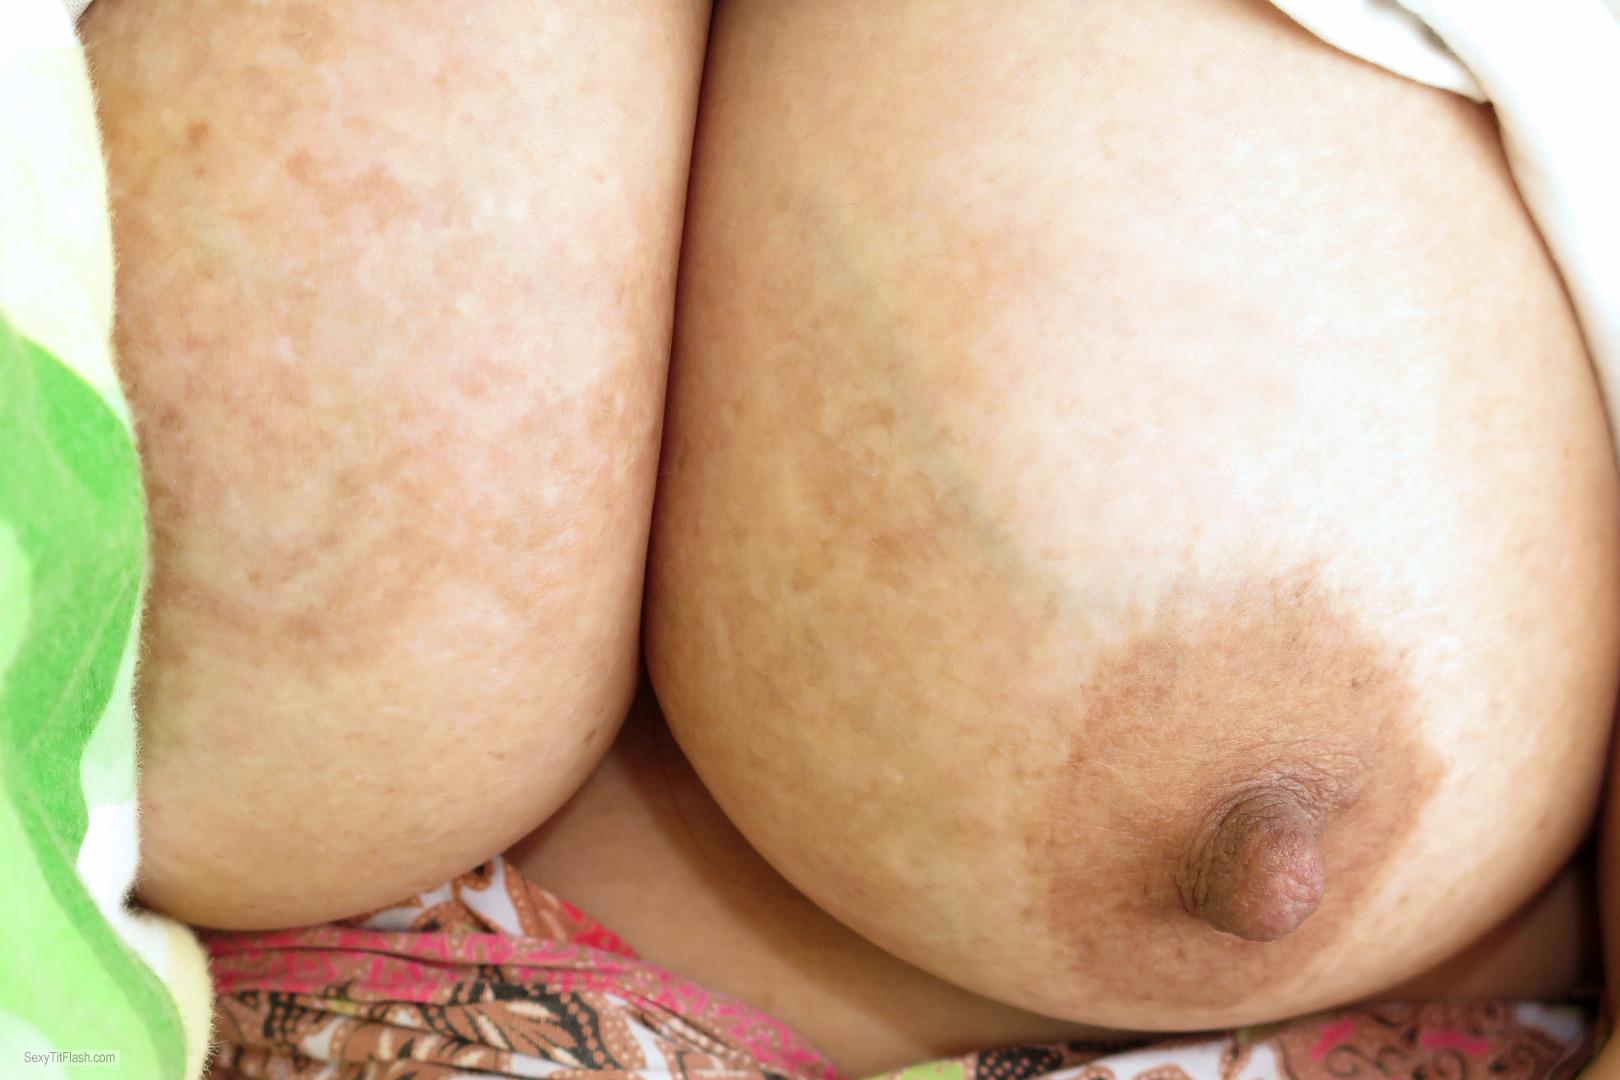 Tit Flash: Wife's Very Big Tits - Z1978 from Malaysia